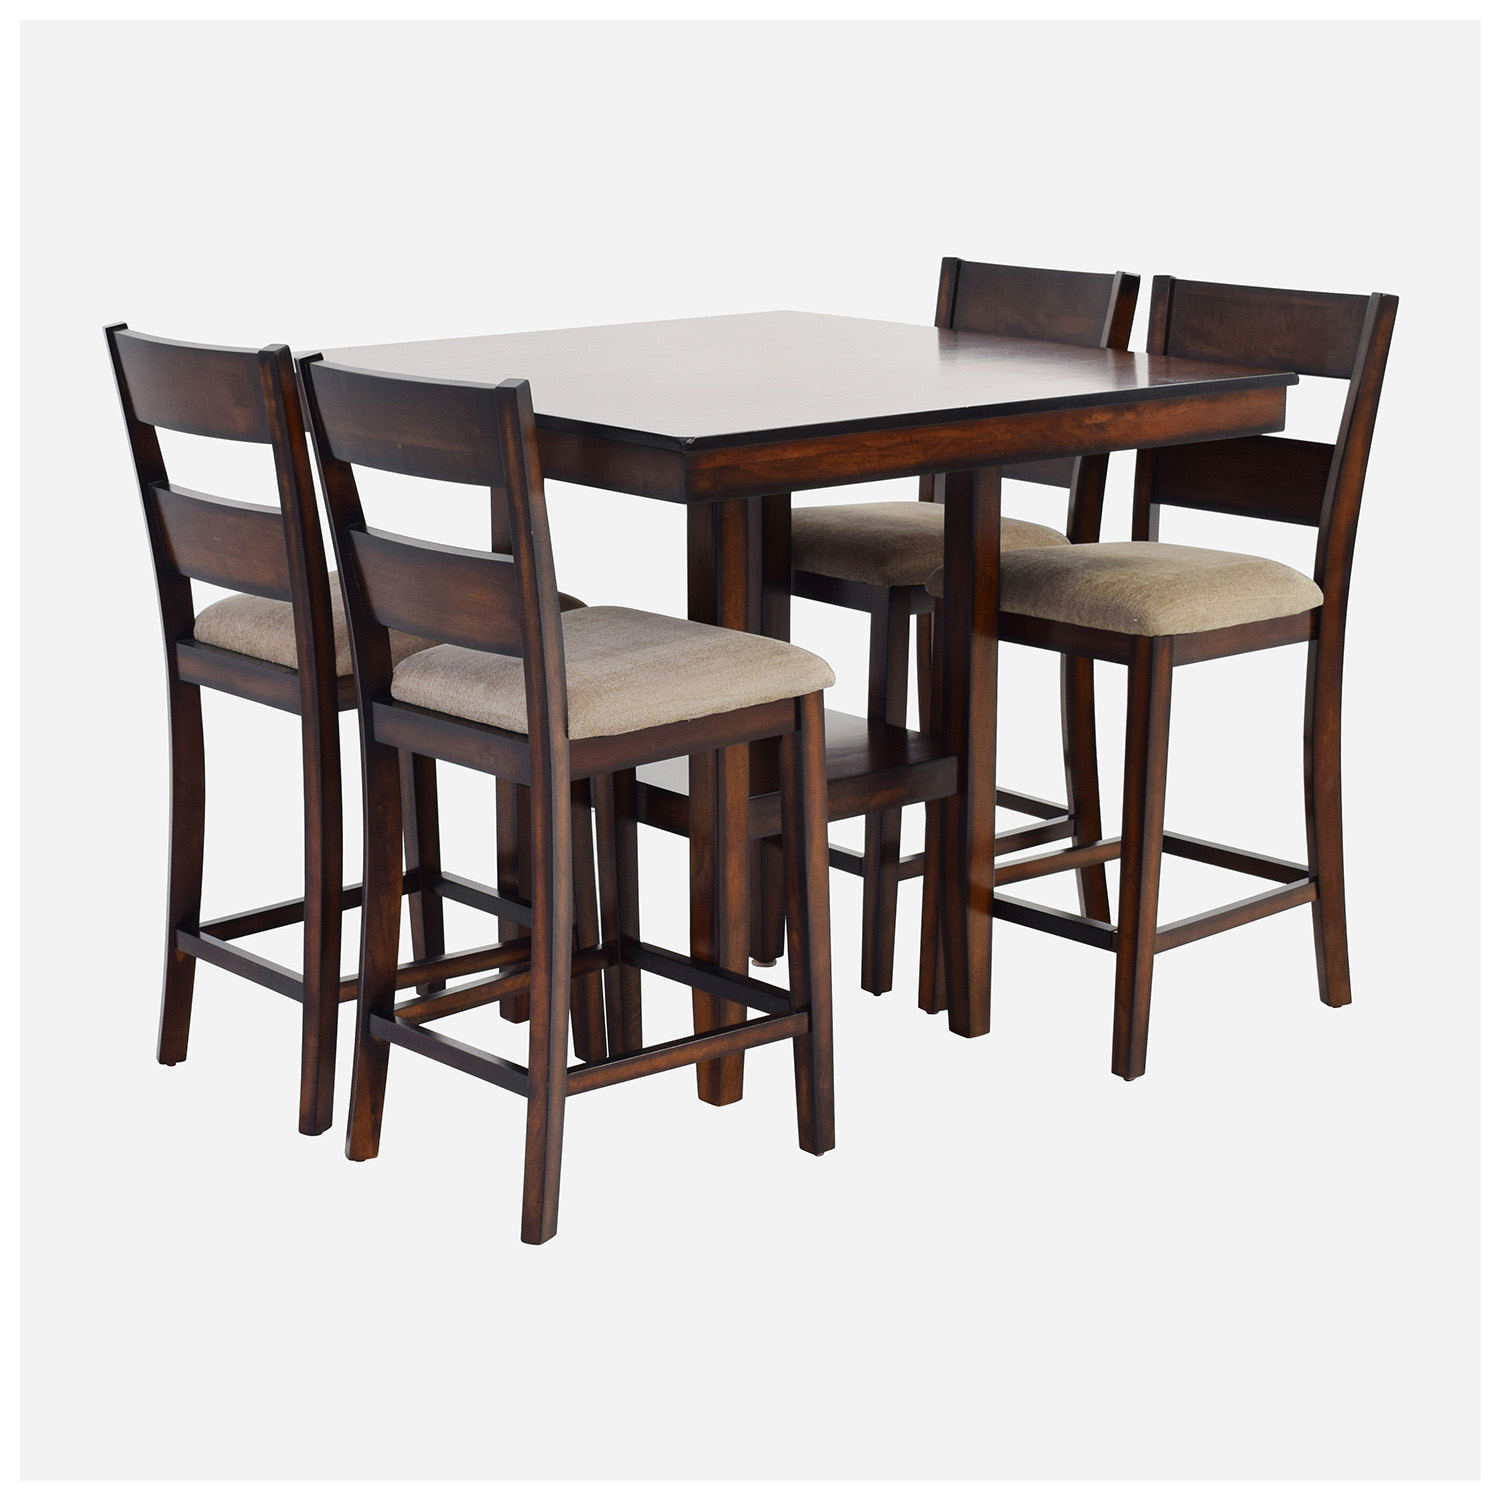 OFF Macy s Macy s Branton Counter Height Table with Chairs